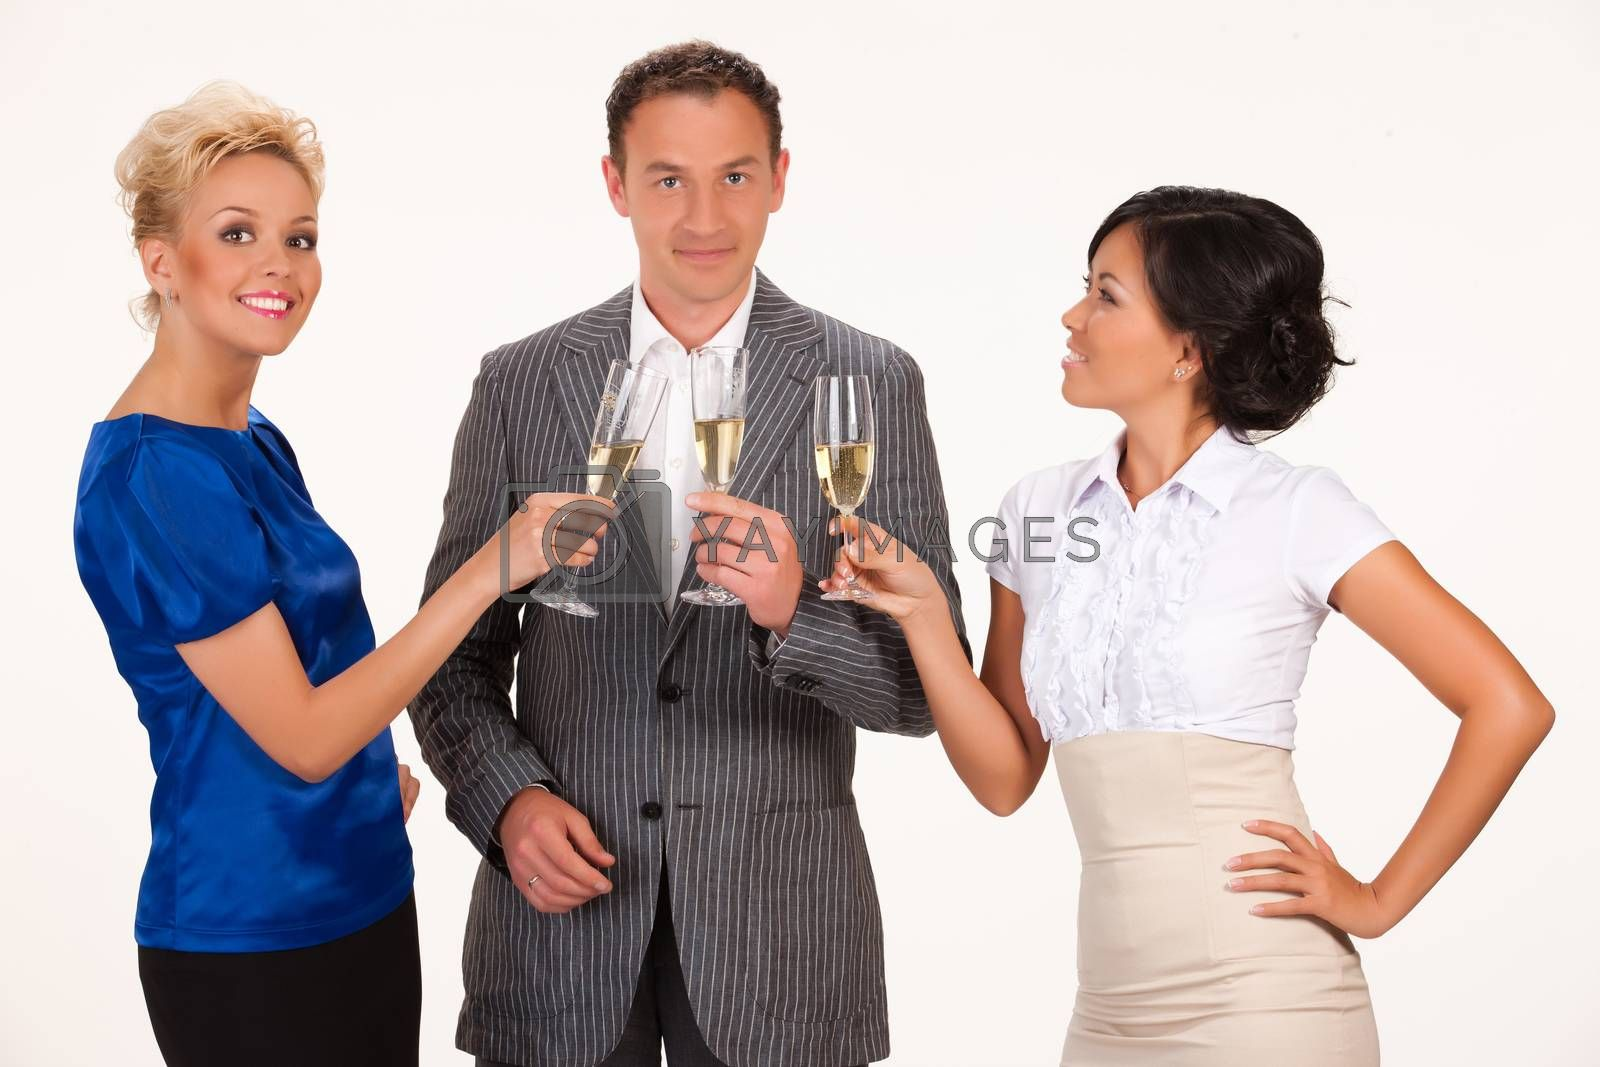 Young people drinking the wine from glasses on isolated background